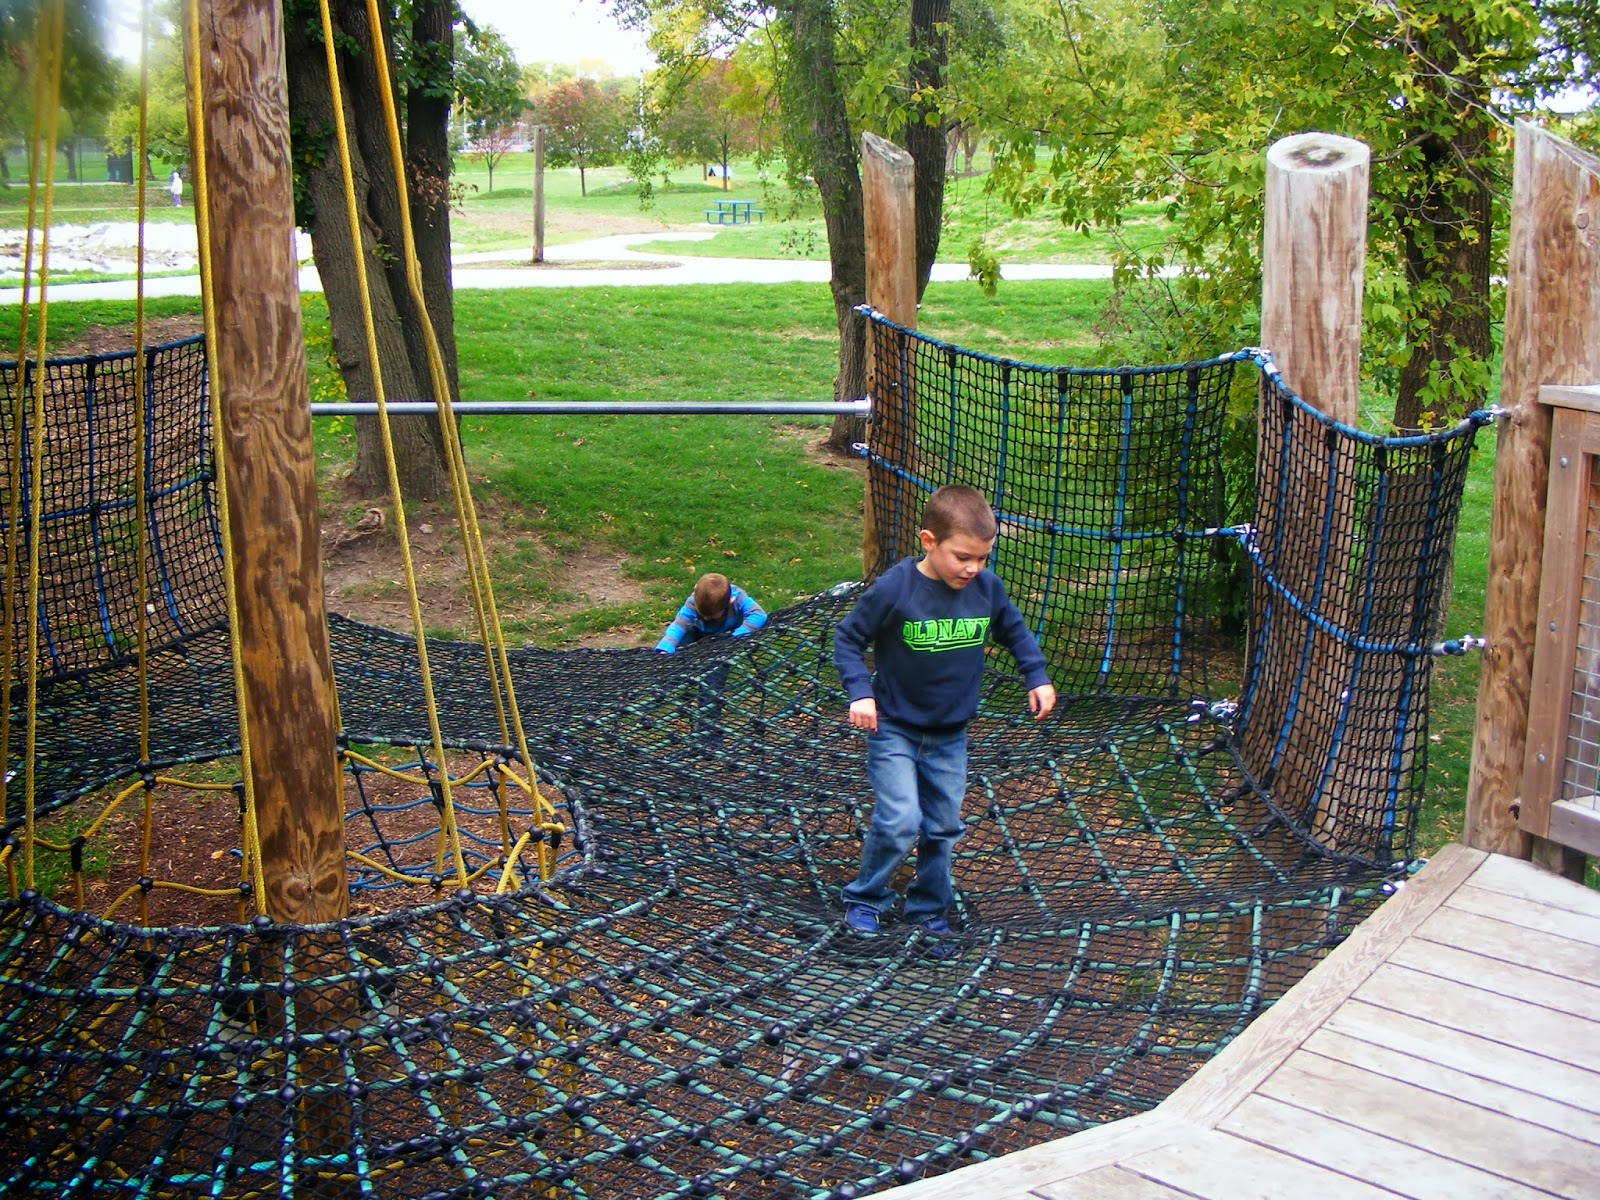 Glamorous Kidspert: 105 Things To Do In Des Moines With Your Kids intended for Best of Fun Things To Do In Your Backyard